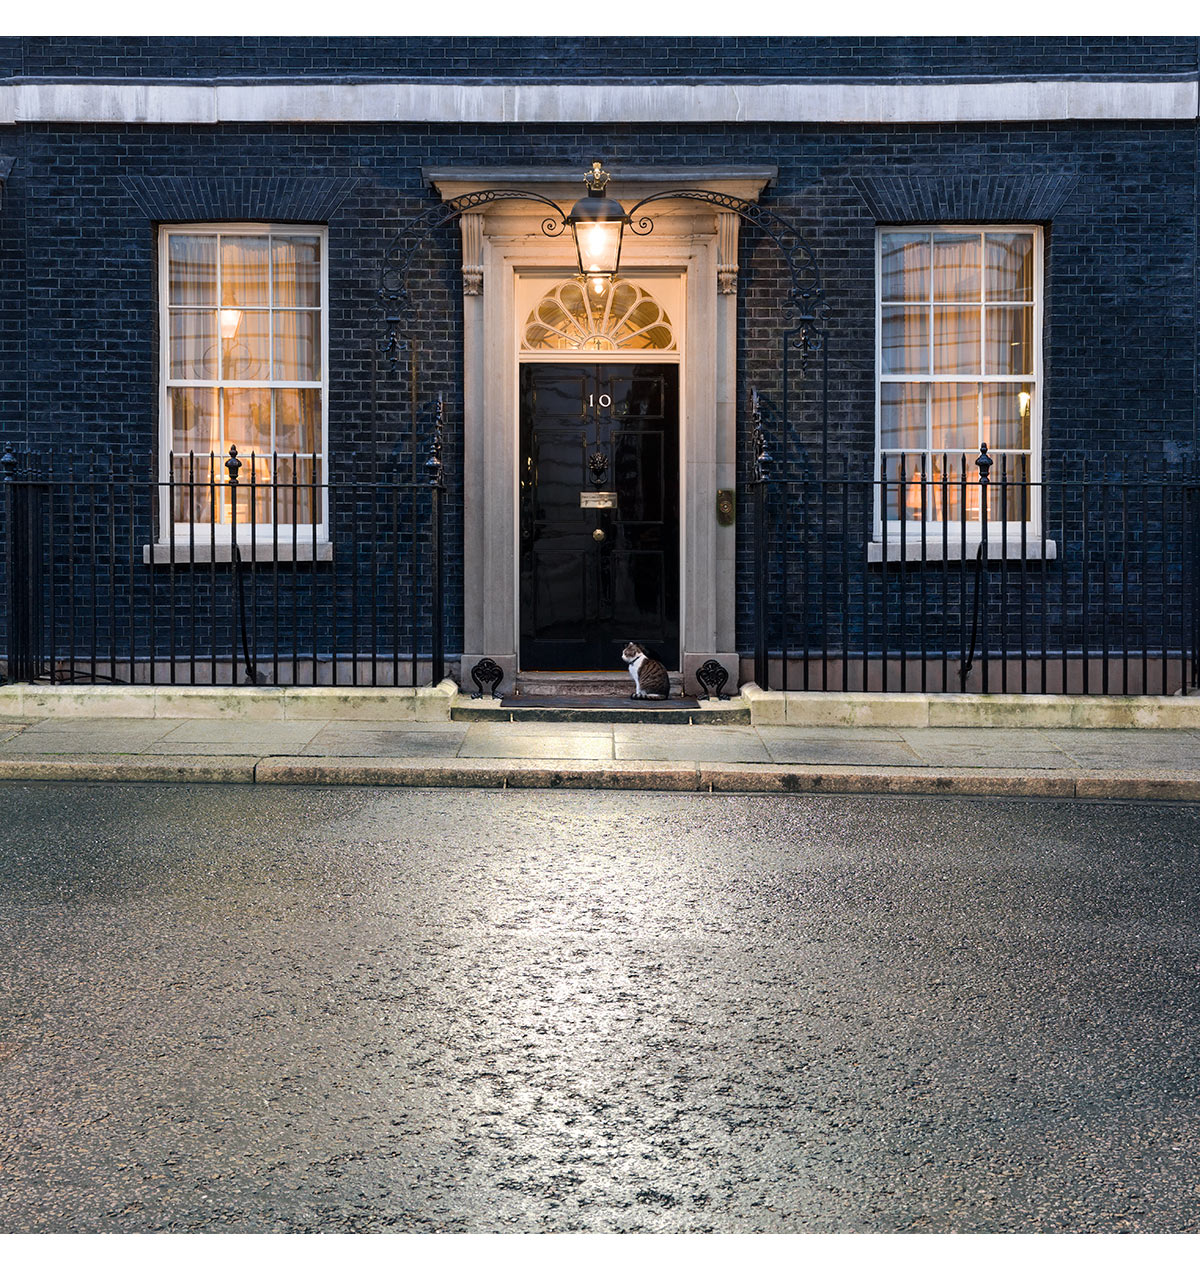 10 Downing Street, London. Paul Grundy  Architectural Photographer